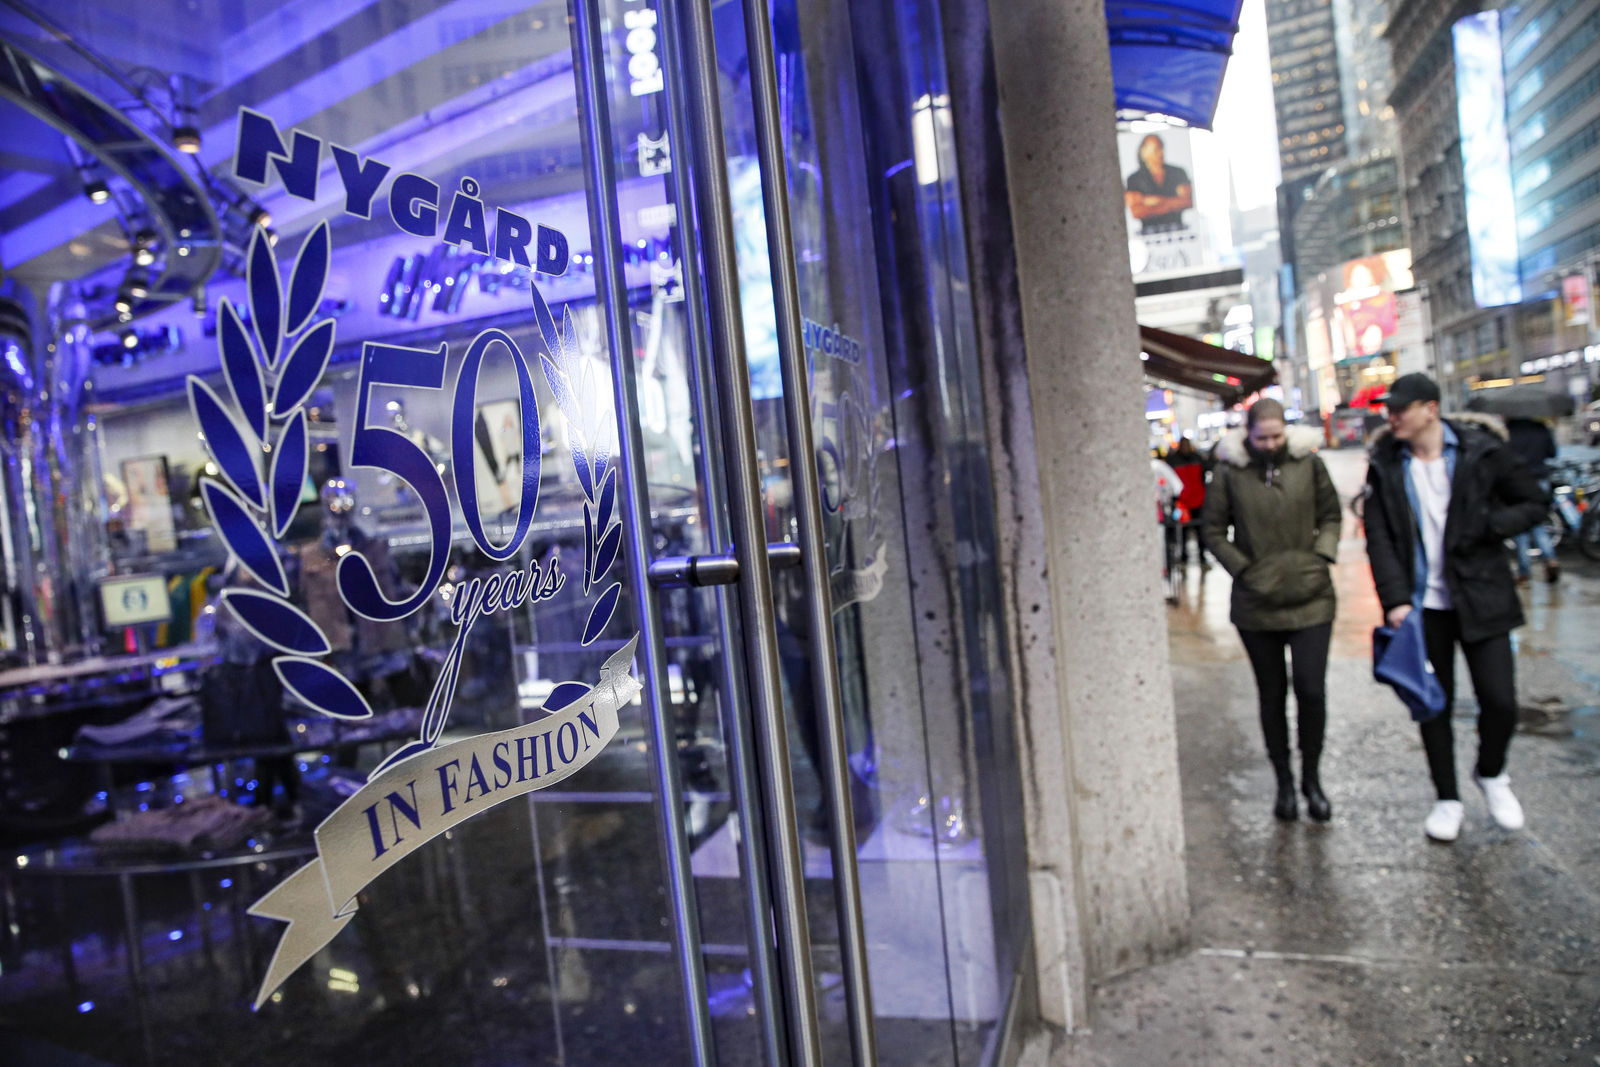 Pedestrians pass the storefront of Peter Nygard's Times Square headquarters, Tuesday, Feb. 25, 2020, in New York. Federal authorities on Tuesday, Feb. 25, 2020, raided the Manhattan headquarters of the Canadian fashion mogul Peter Nygard amid claims that he sexually assaulted and trafficked dozens of teenage girls and young women.   (AP Photo/John Minchillo)